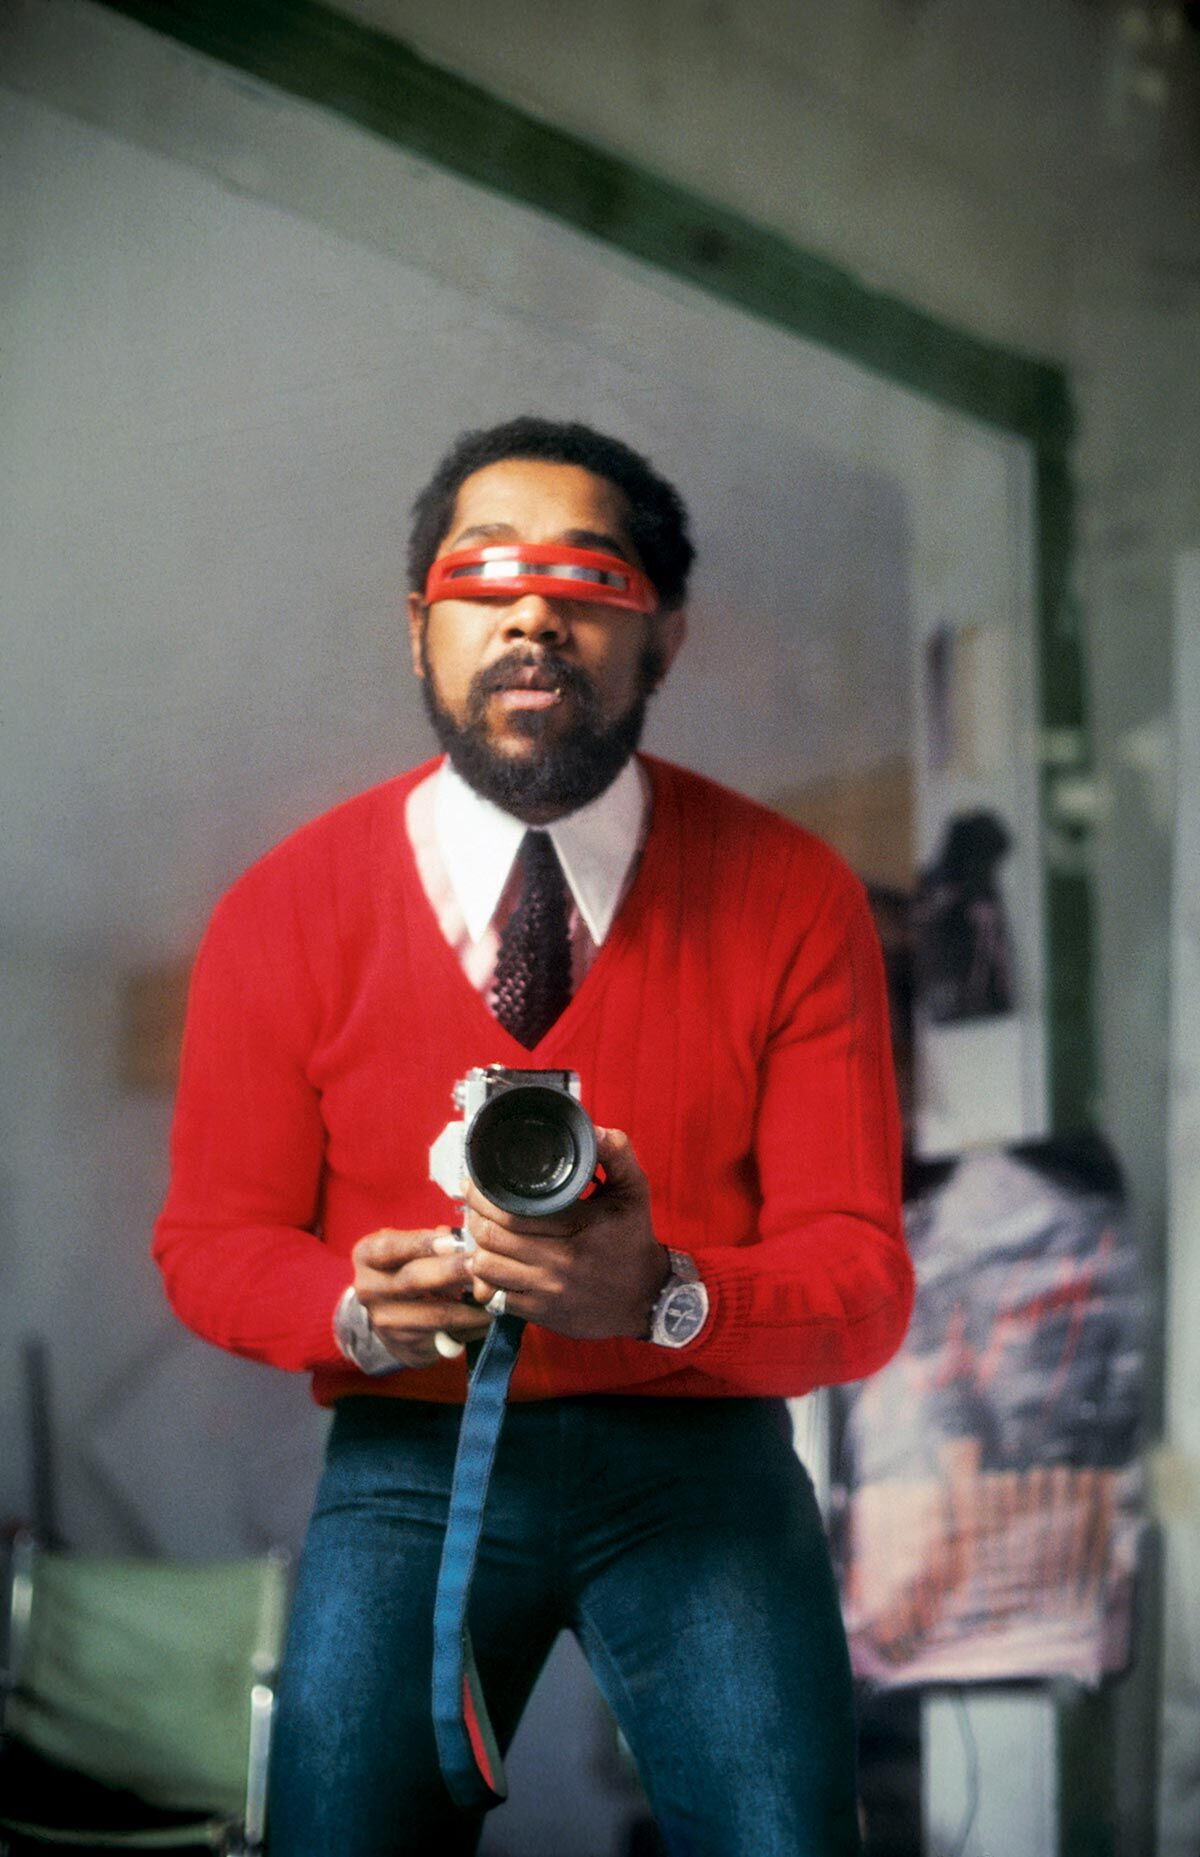 Barkley L. Hendricks, Self-Portrait with Red Sweater, 1980/2013. © Estate of Barkley L. Hendricks. Courtesy of the artist's estate and Jack Shainman Gallery, New York.